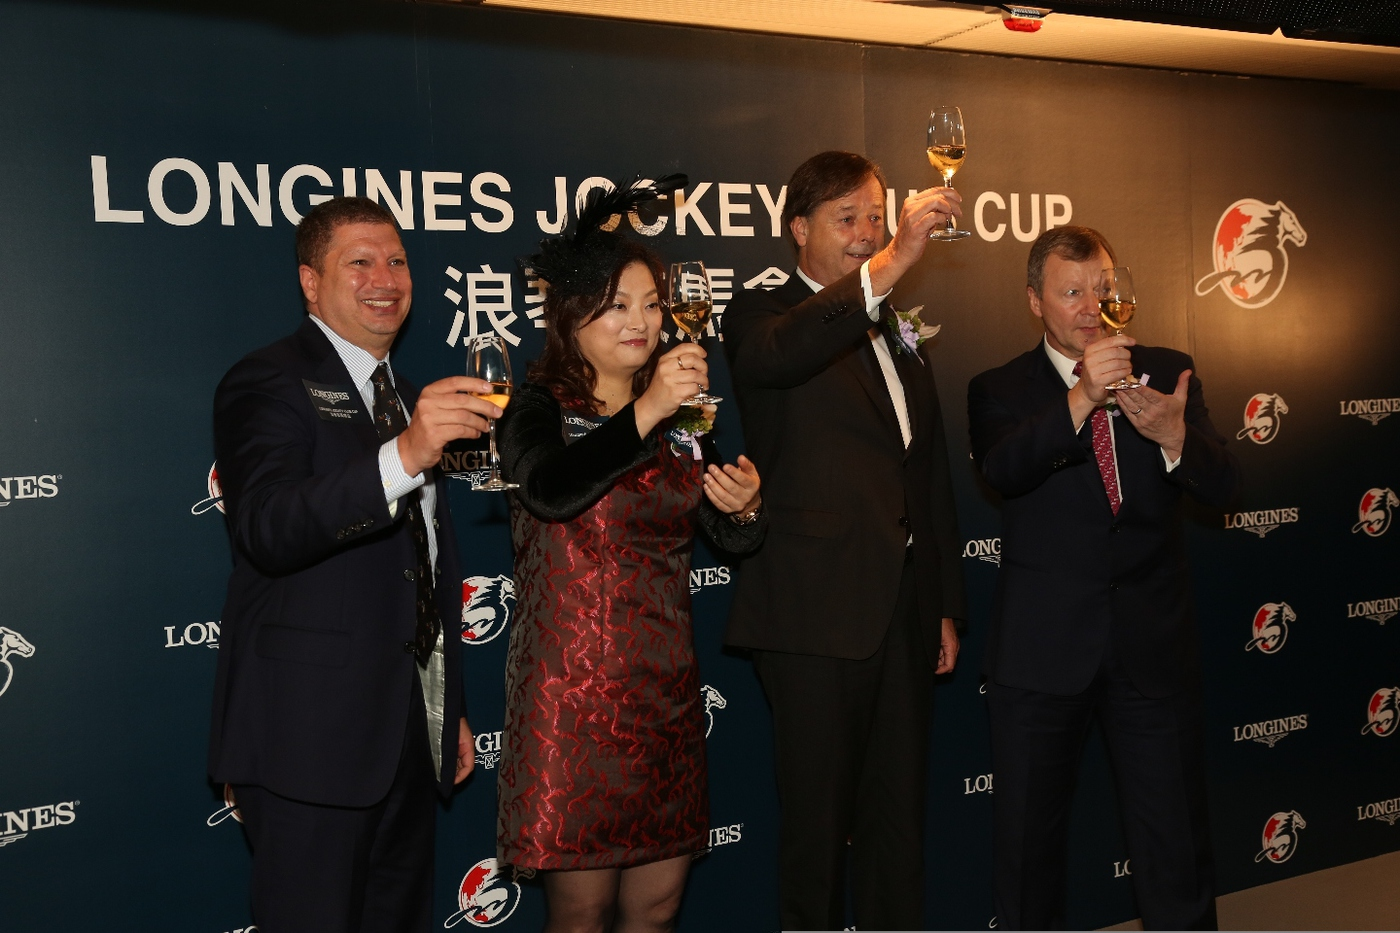 Longines Flat Racing Event: The first ever Longines Jockey Club Cup showcased Longines' passion for equestrian sports 8